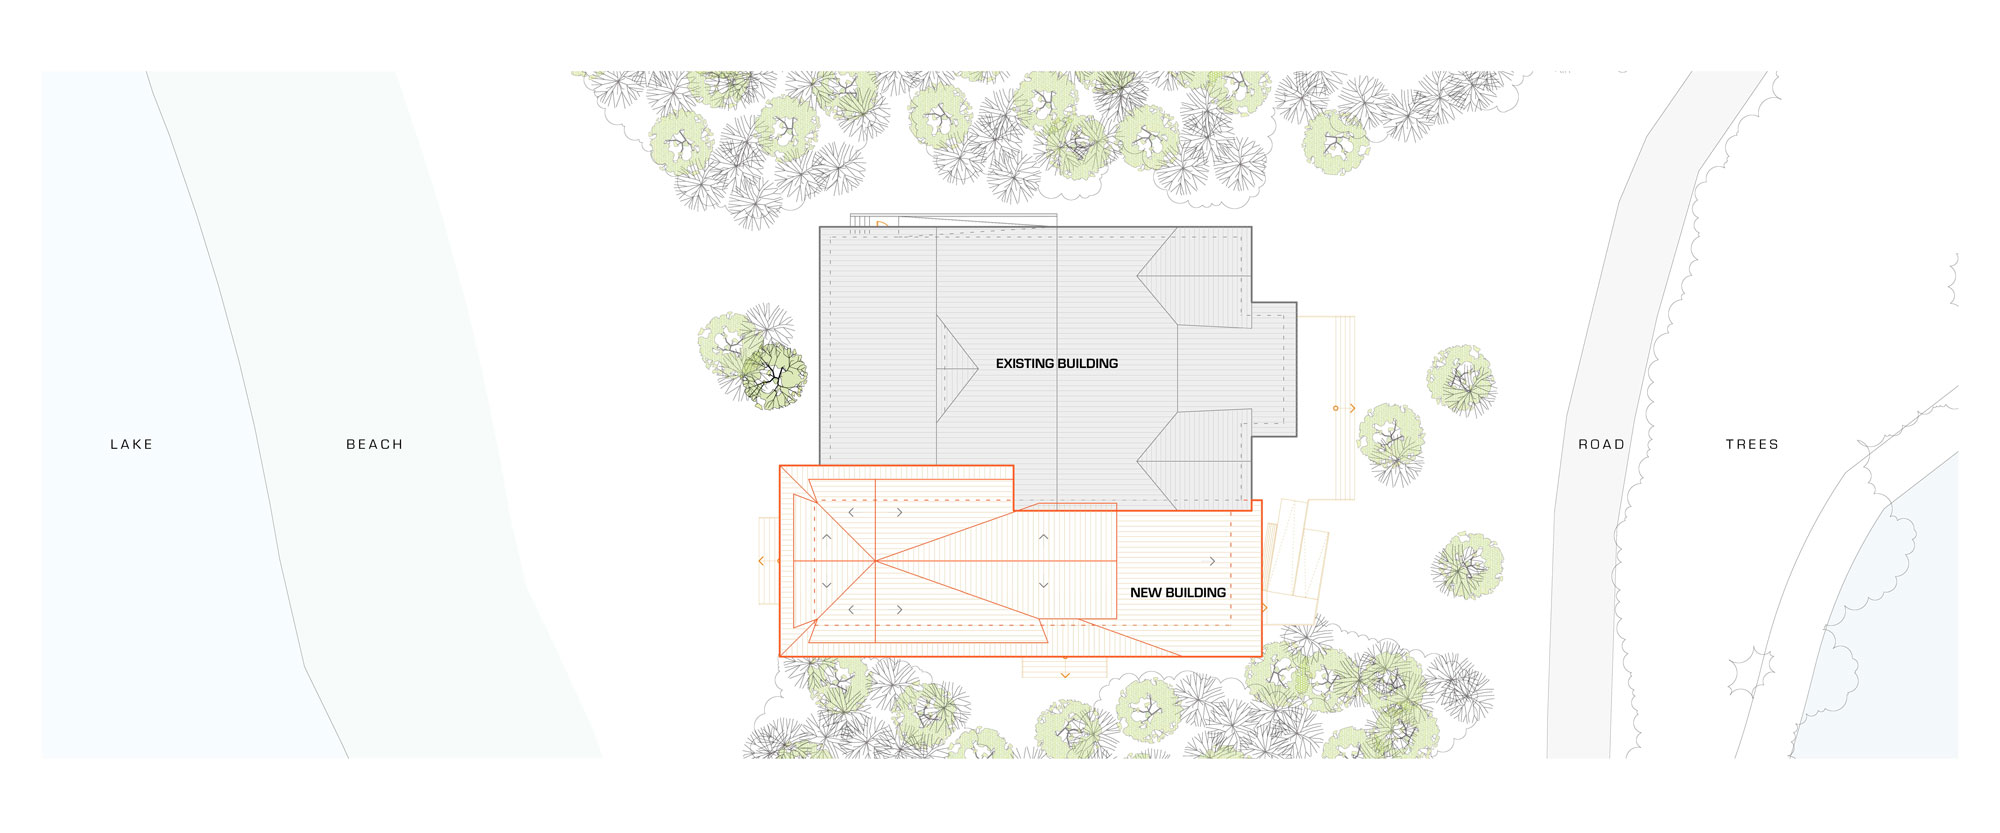 Unit 7 Architecture | Projects - Victoria Beach Clubhouse - SITE PLAN